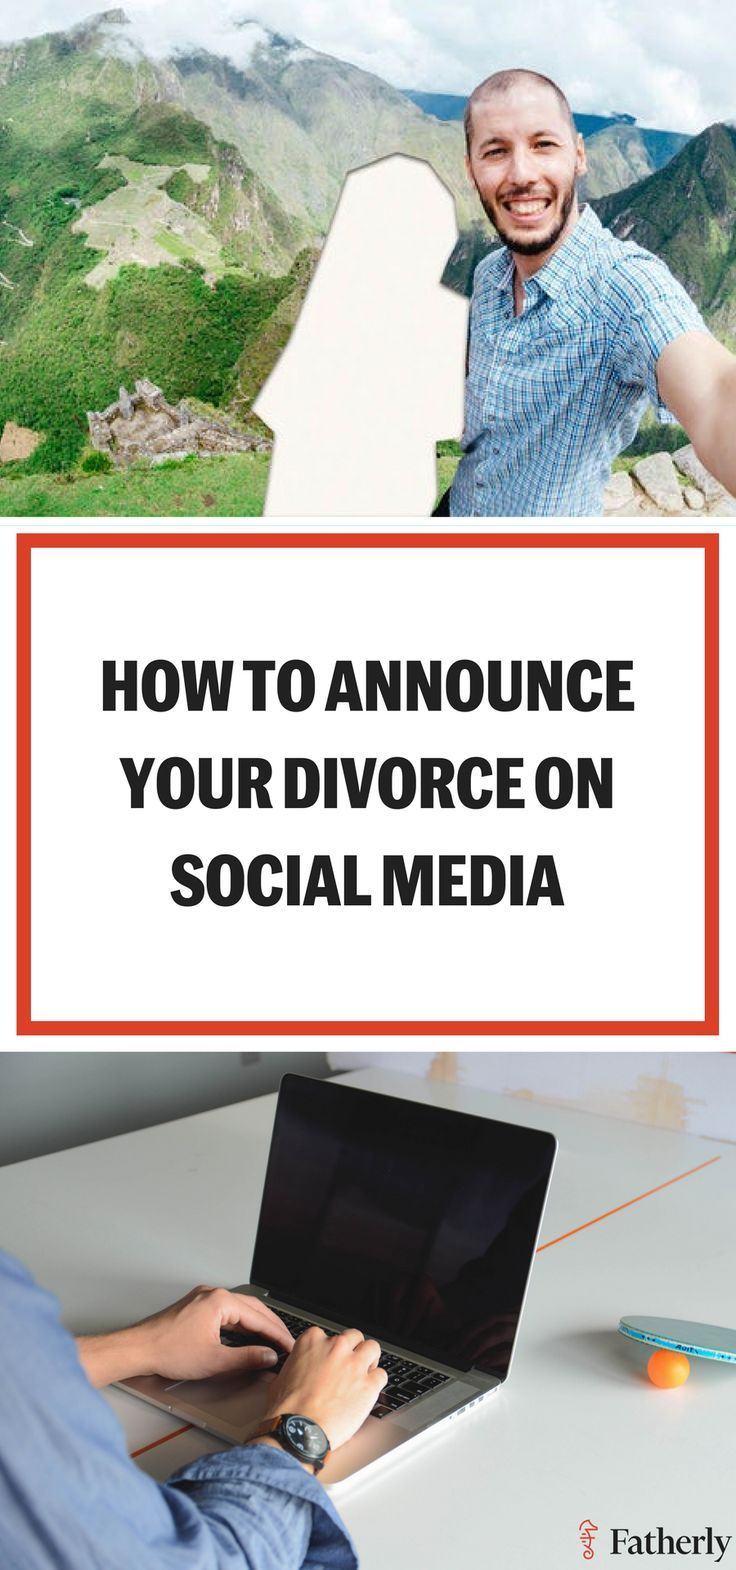 Dating tips for divorcees